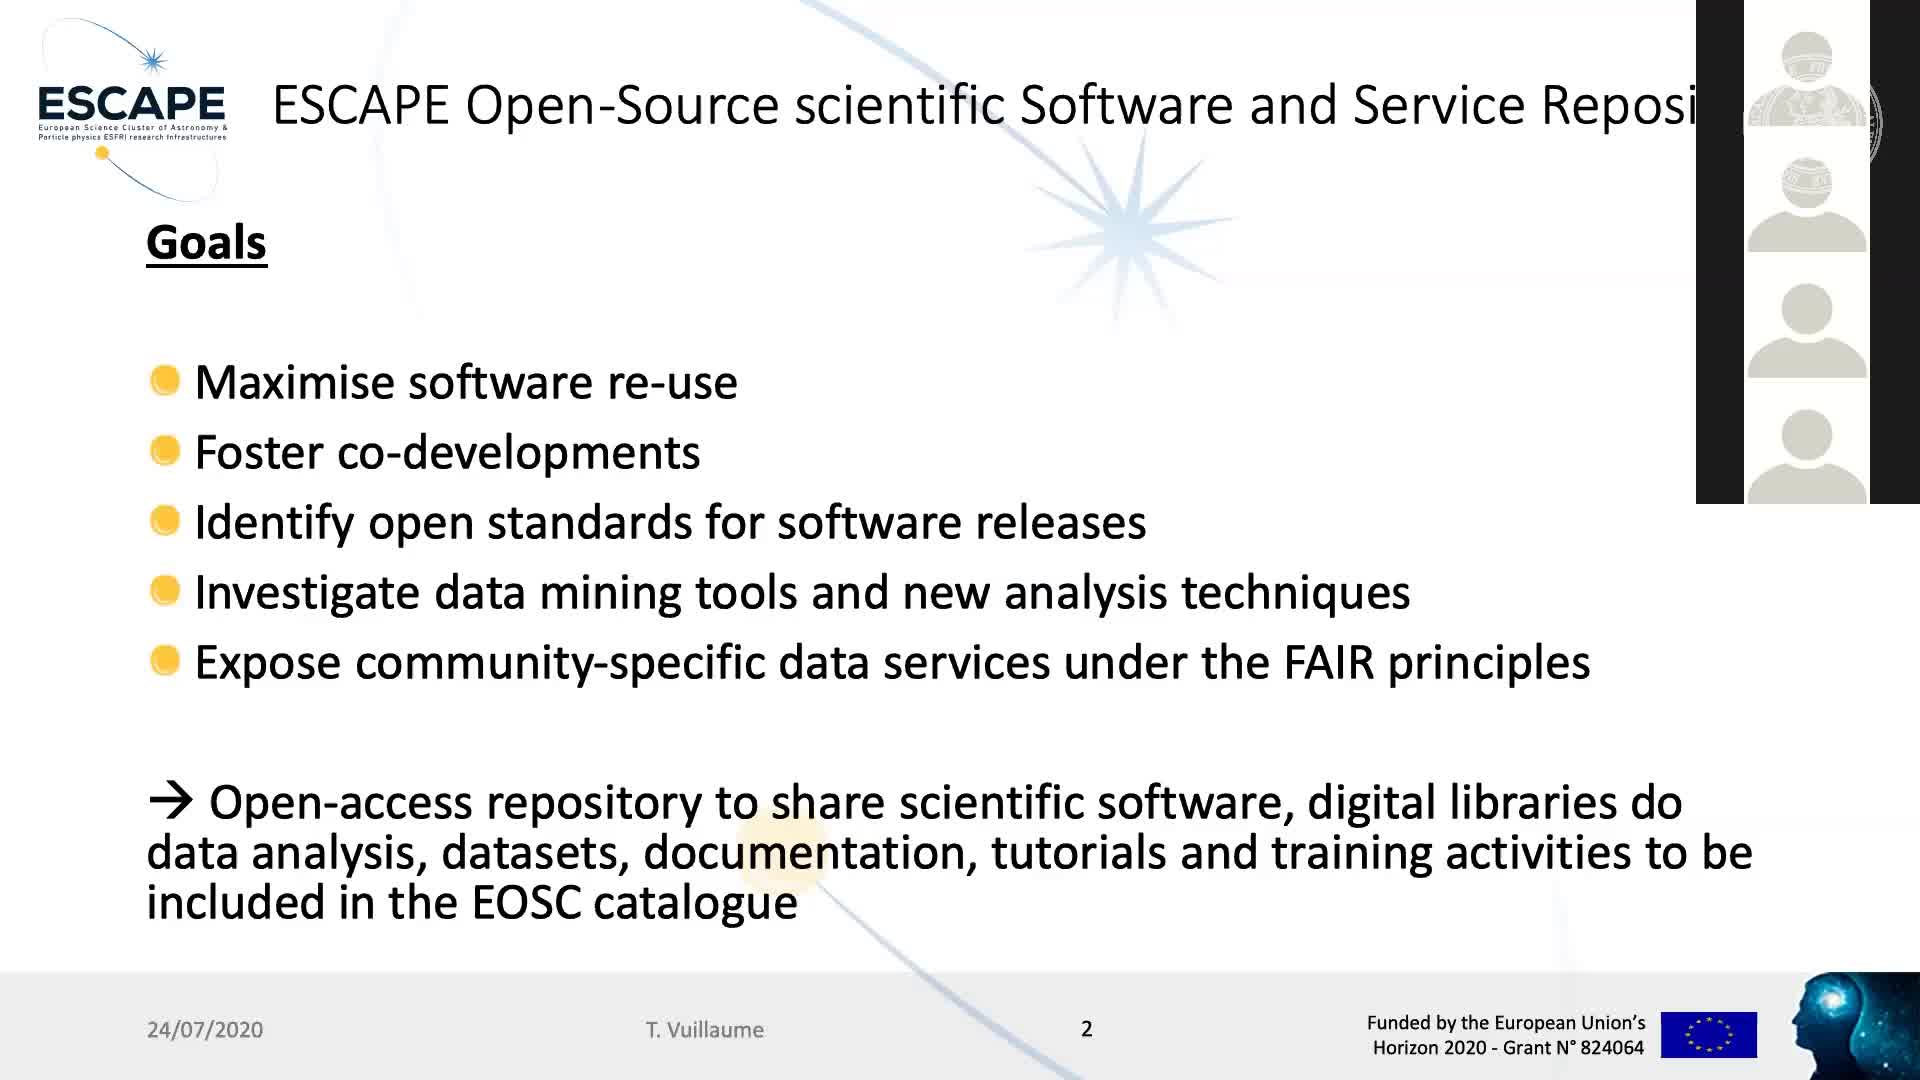 OSSR: ESCAPE Repository and Catalogue preview image